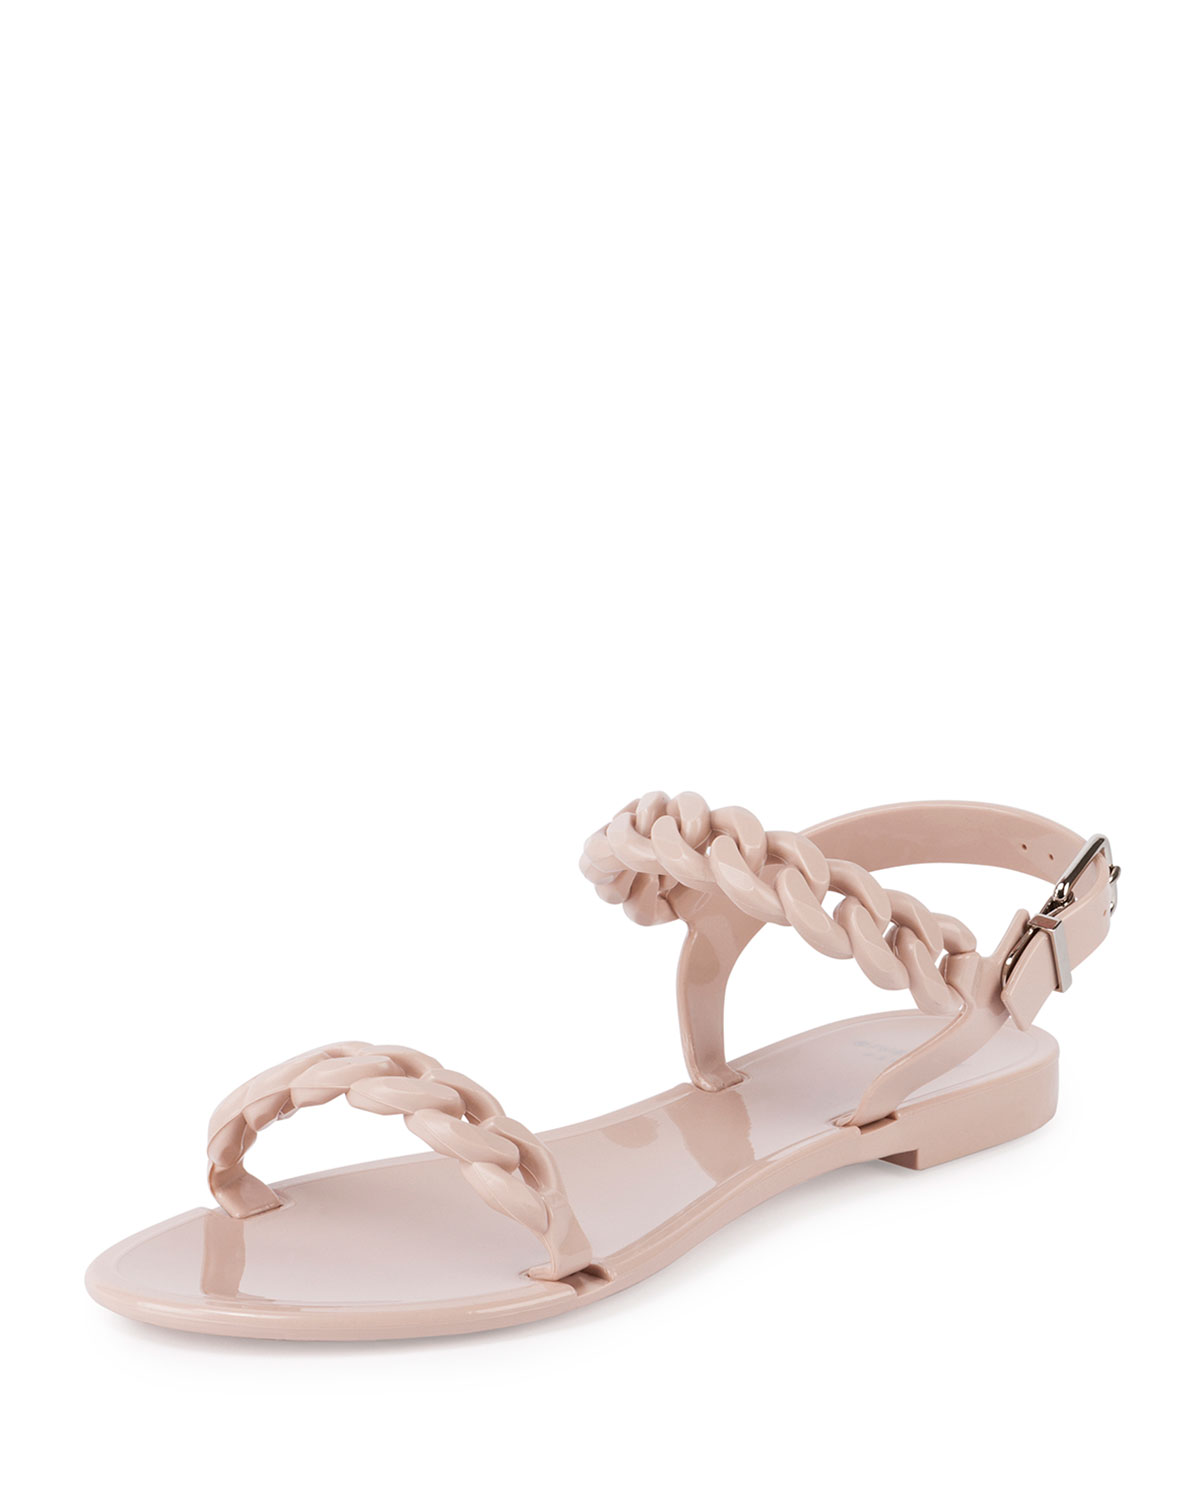 Chain Jelly Flat Sandal, Nude - Givenchy